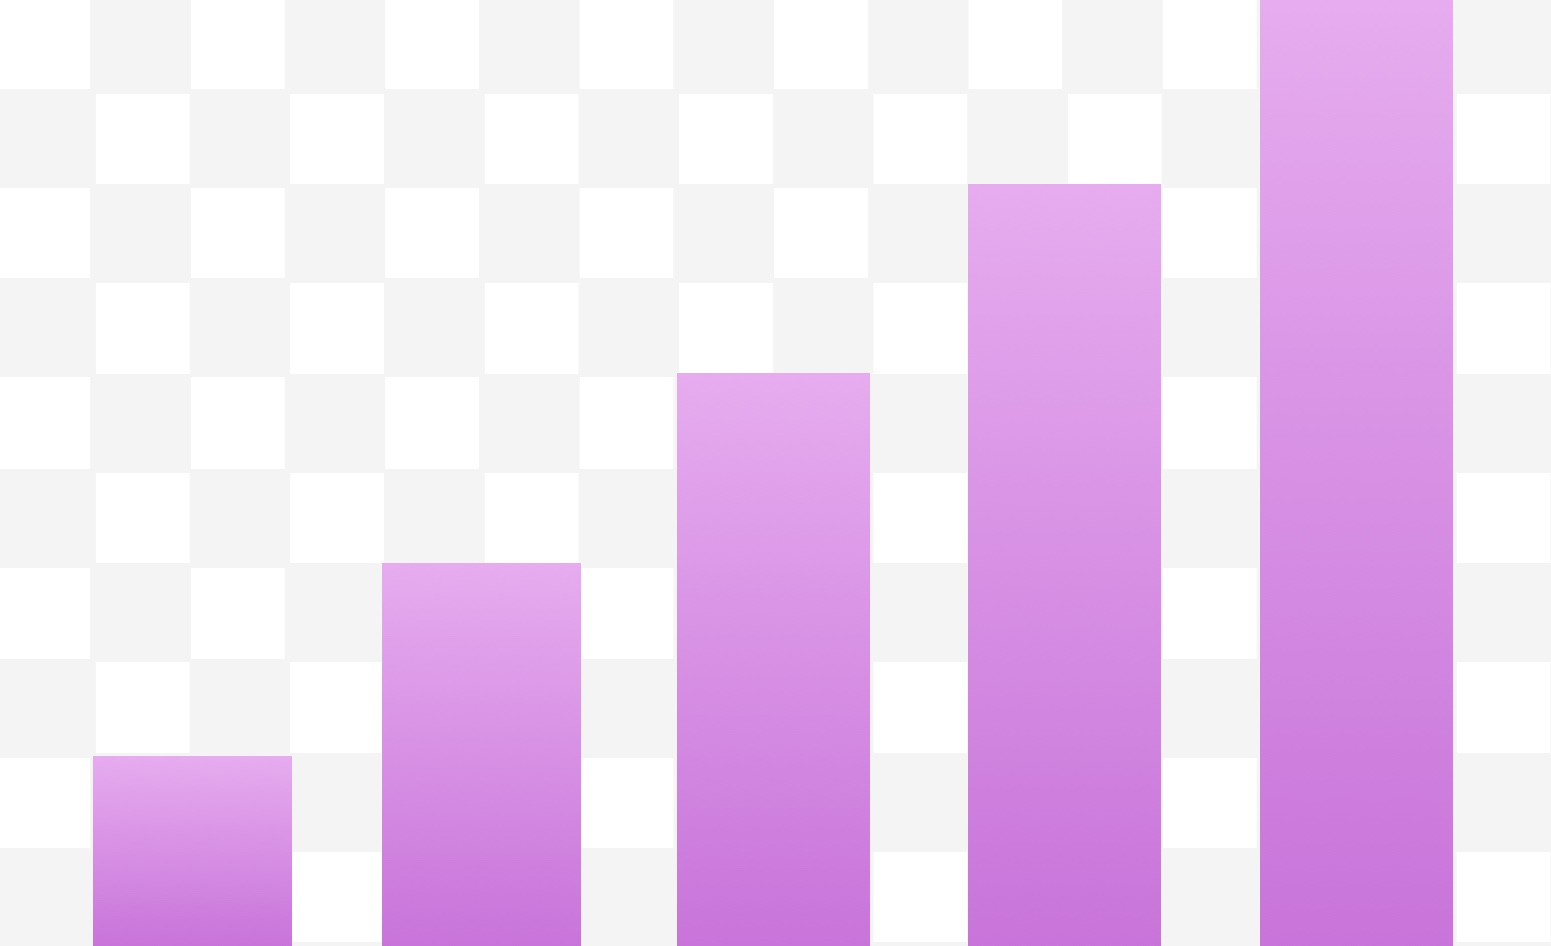 Five vertical purple bars that get progressively taller from left to right like a signal indicator on a cell phone.